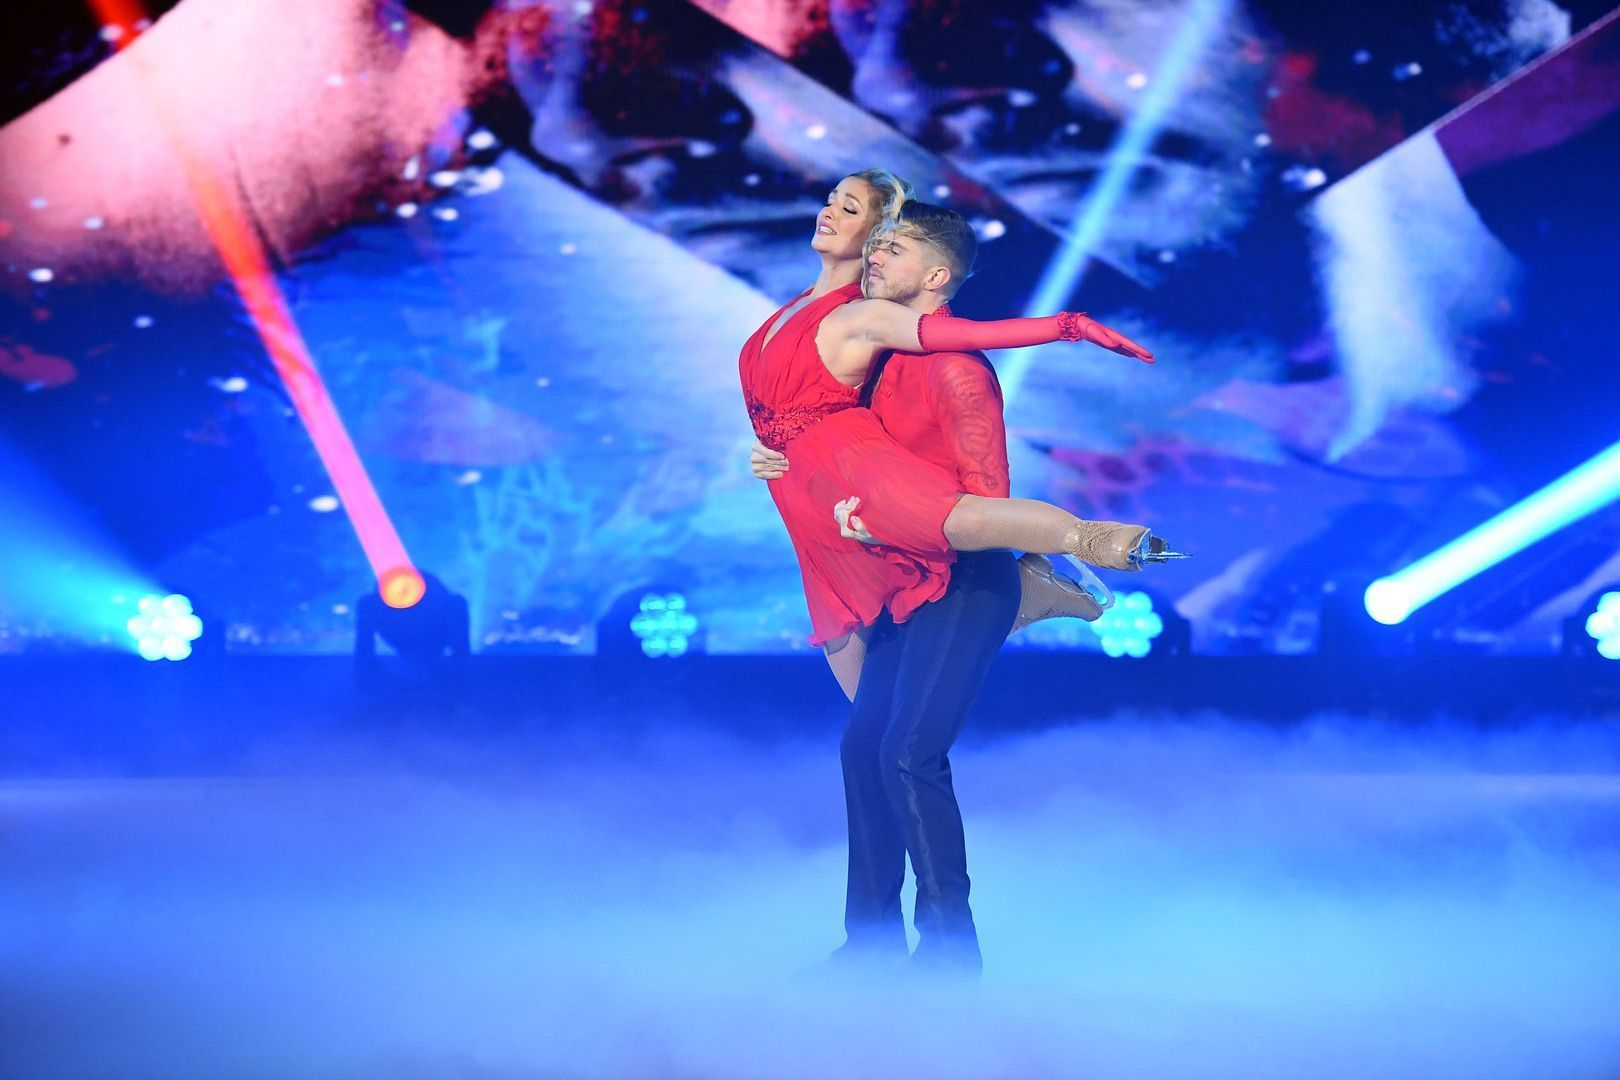 Joey Heindle: Emotionaler Eistanz zu Roxette-Song - Dancing on Ice